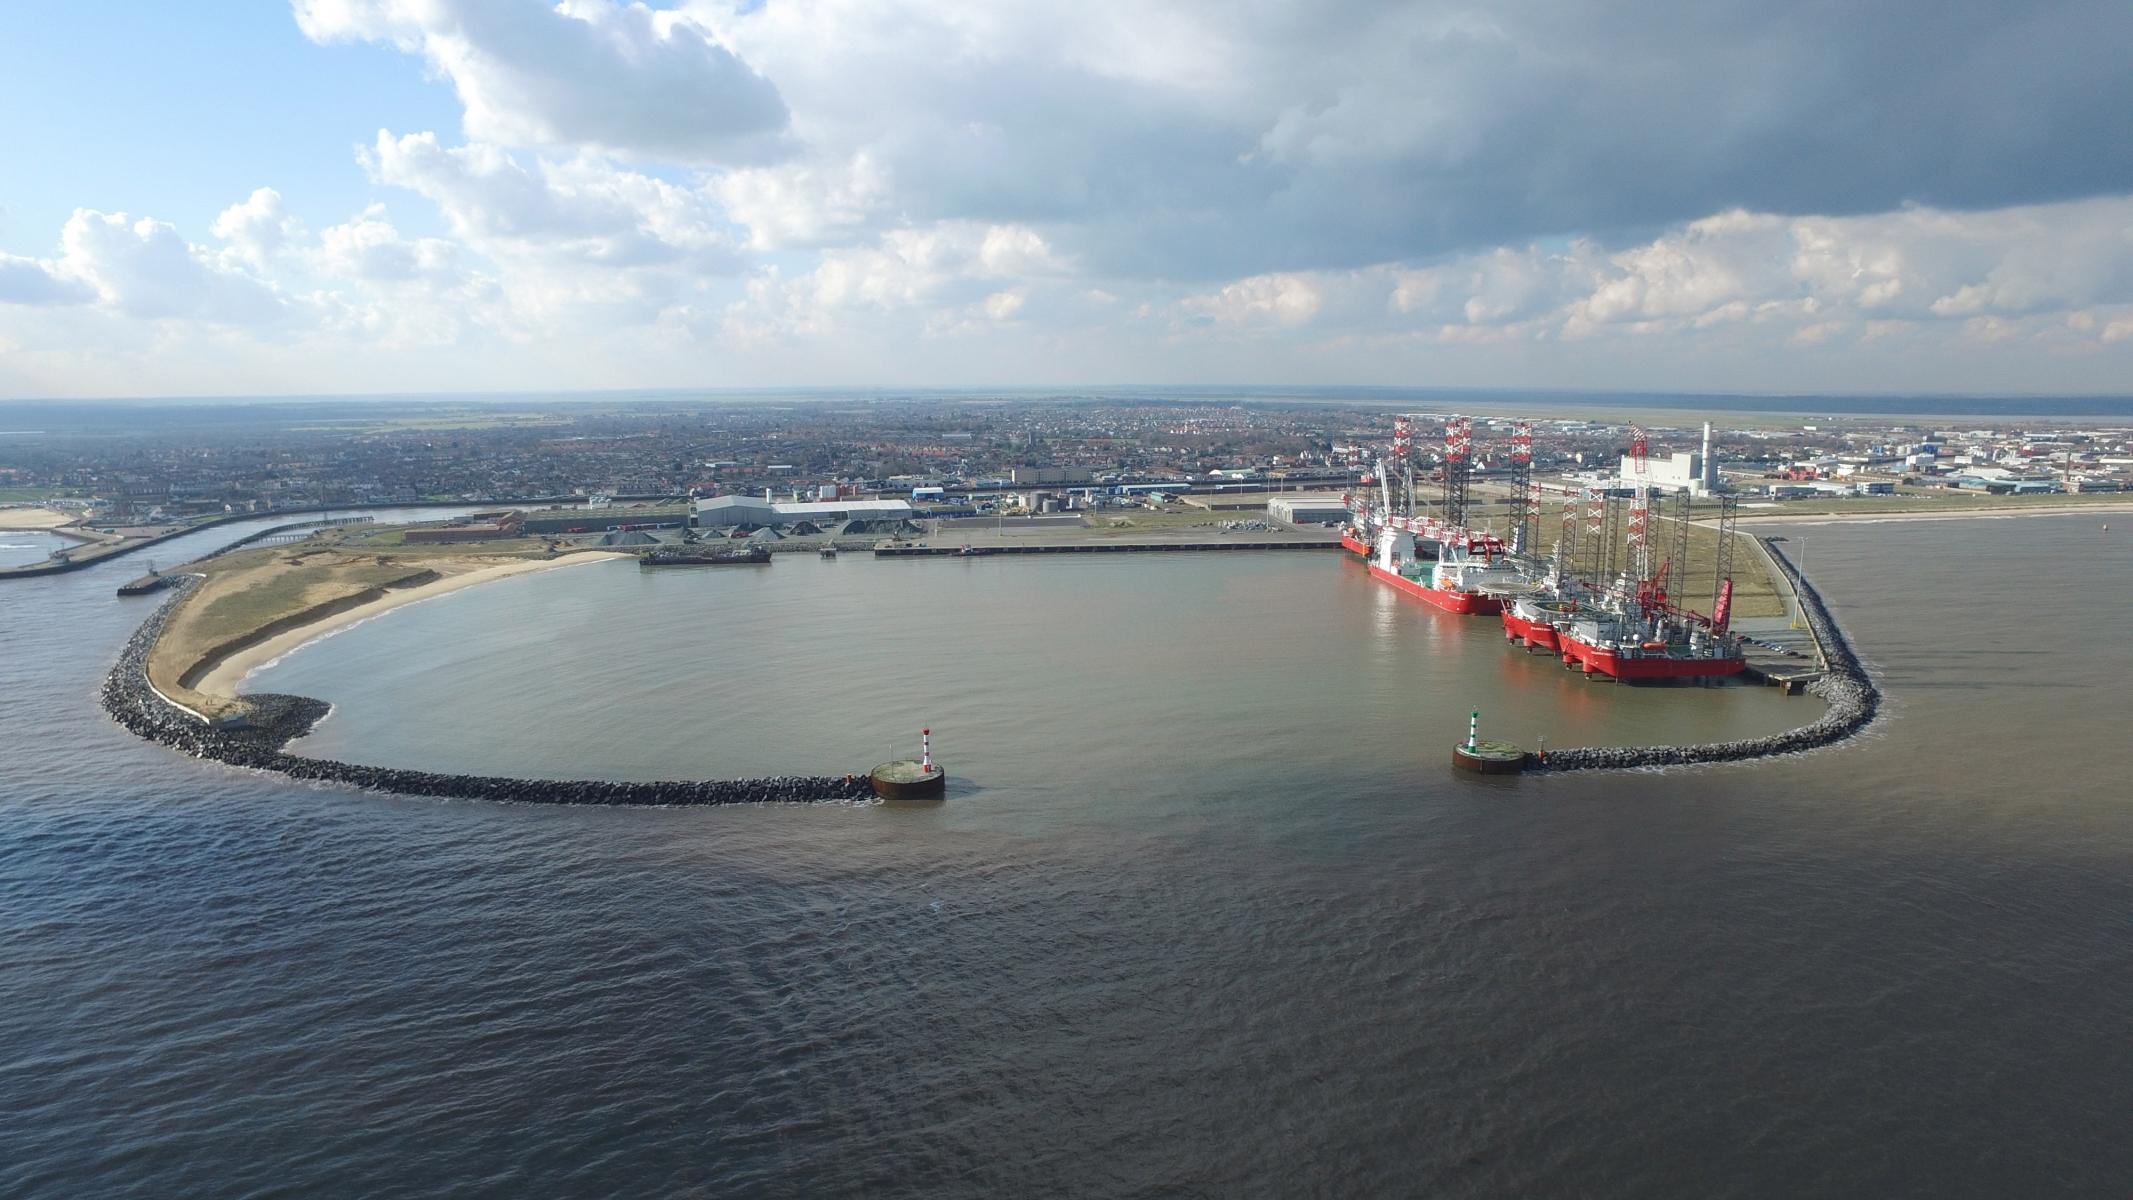 Veolia UK | Great Yarmouth decommissioning facility main image